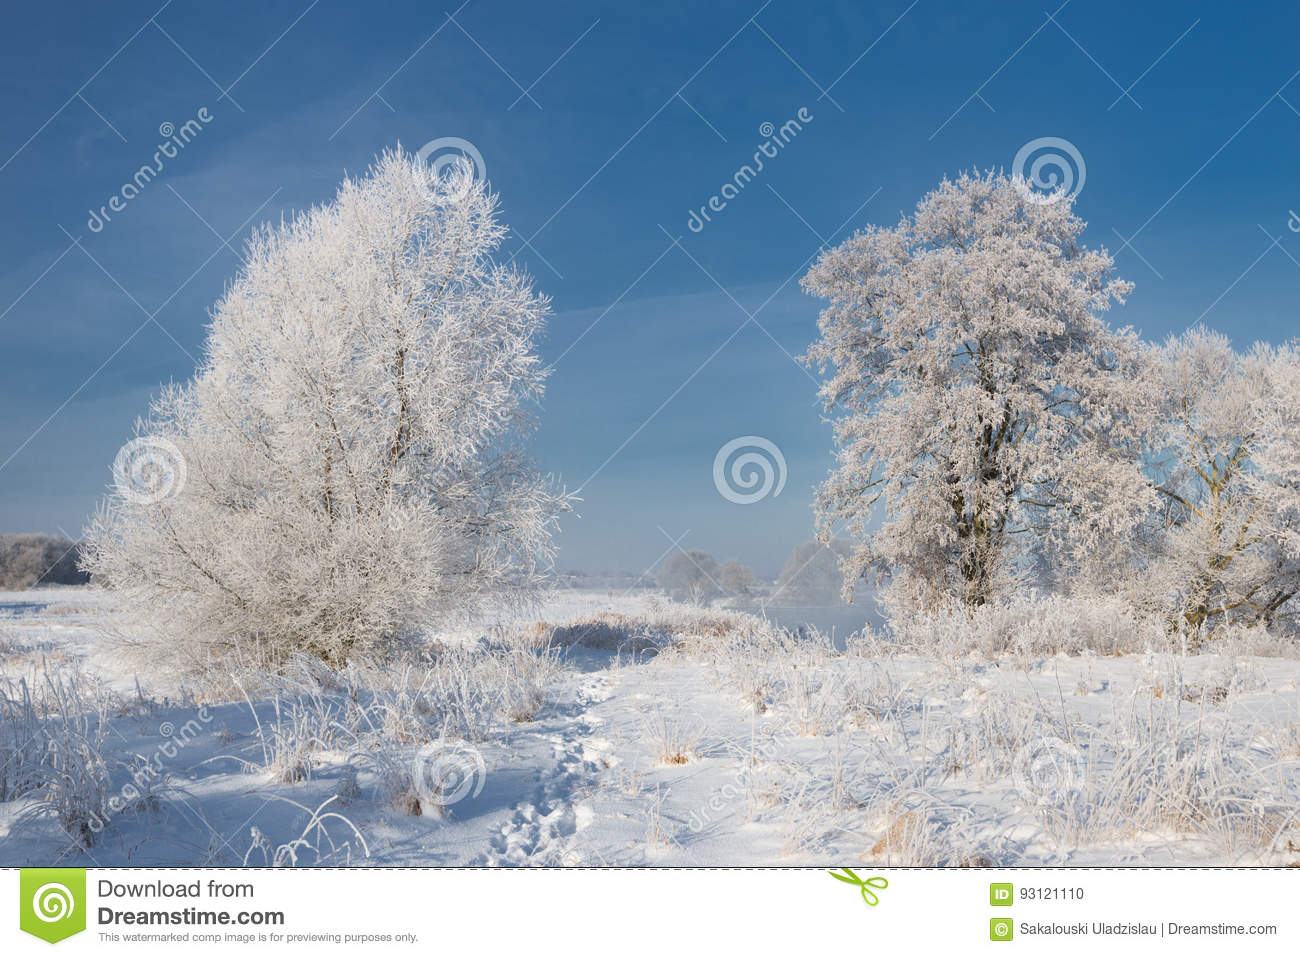 A Real Russian Winter. Morning Frosty Winter Landscape With Dazzling White Snow And Hoarfrost, River And A Saturated Blue Sky.